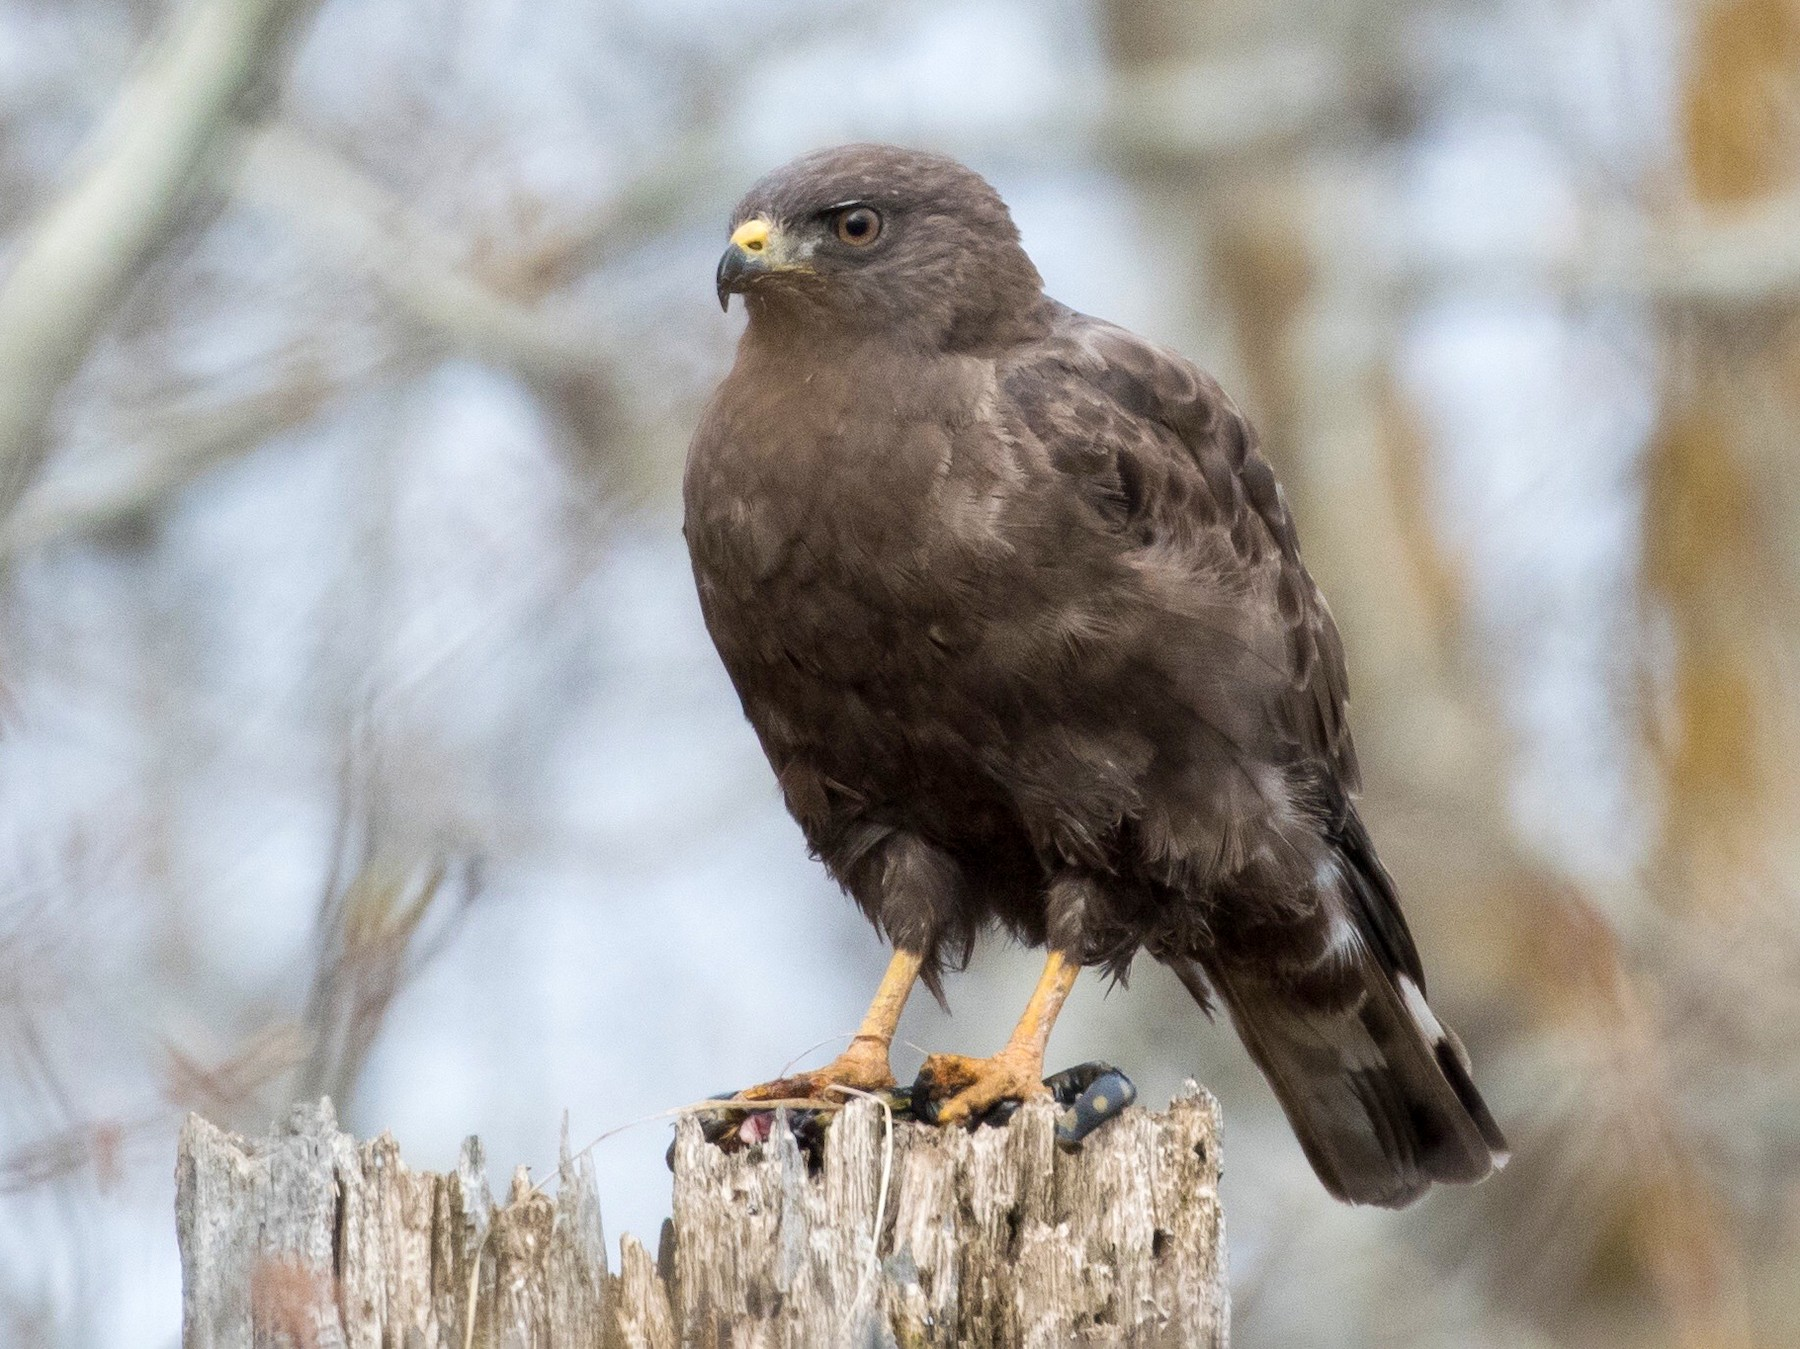 Broad-winged Hawk - Wayne Perala